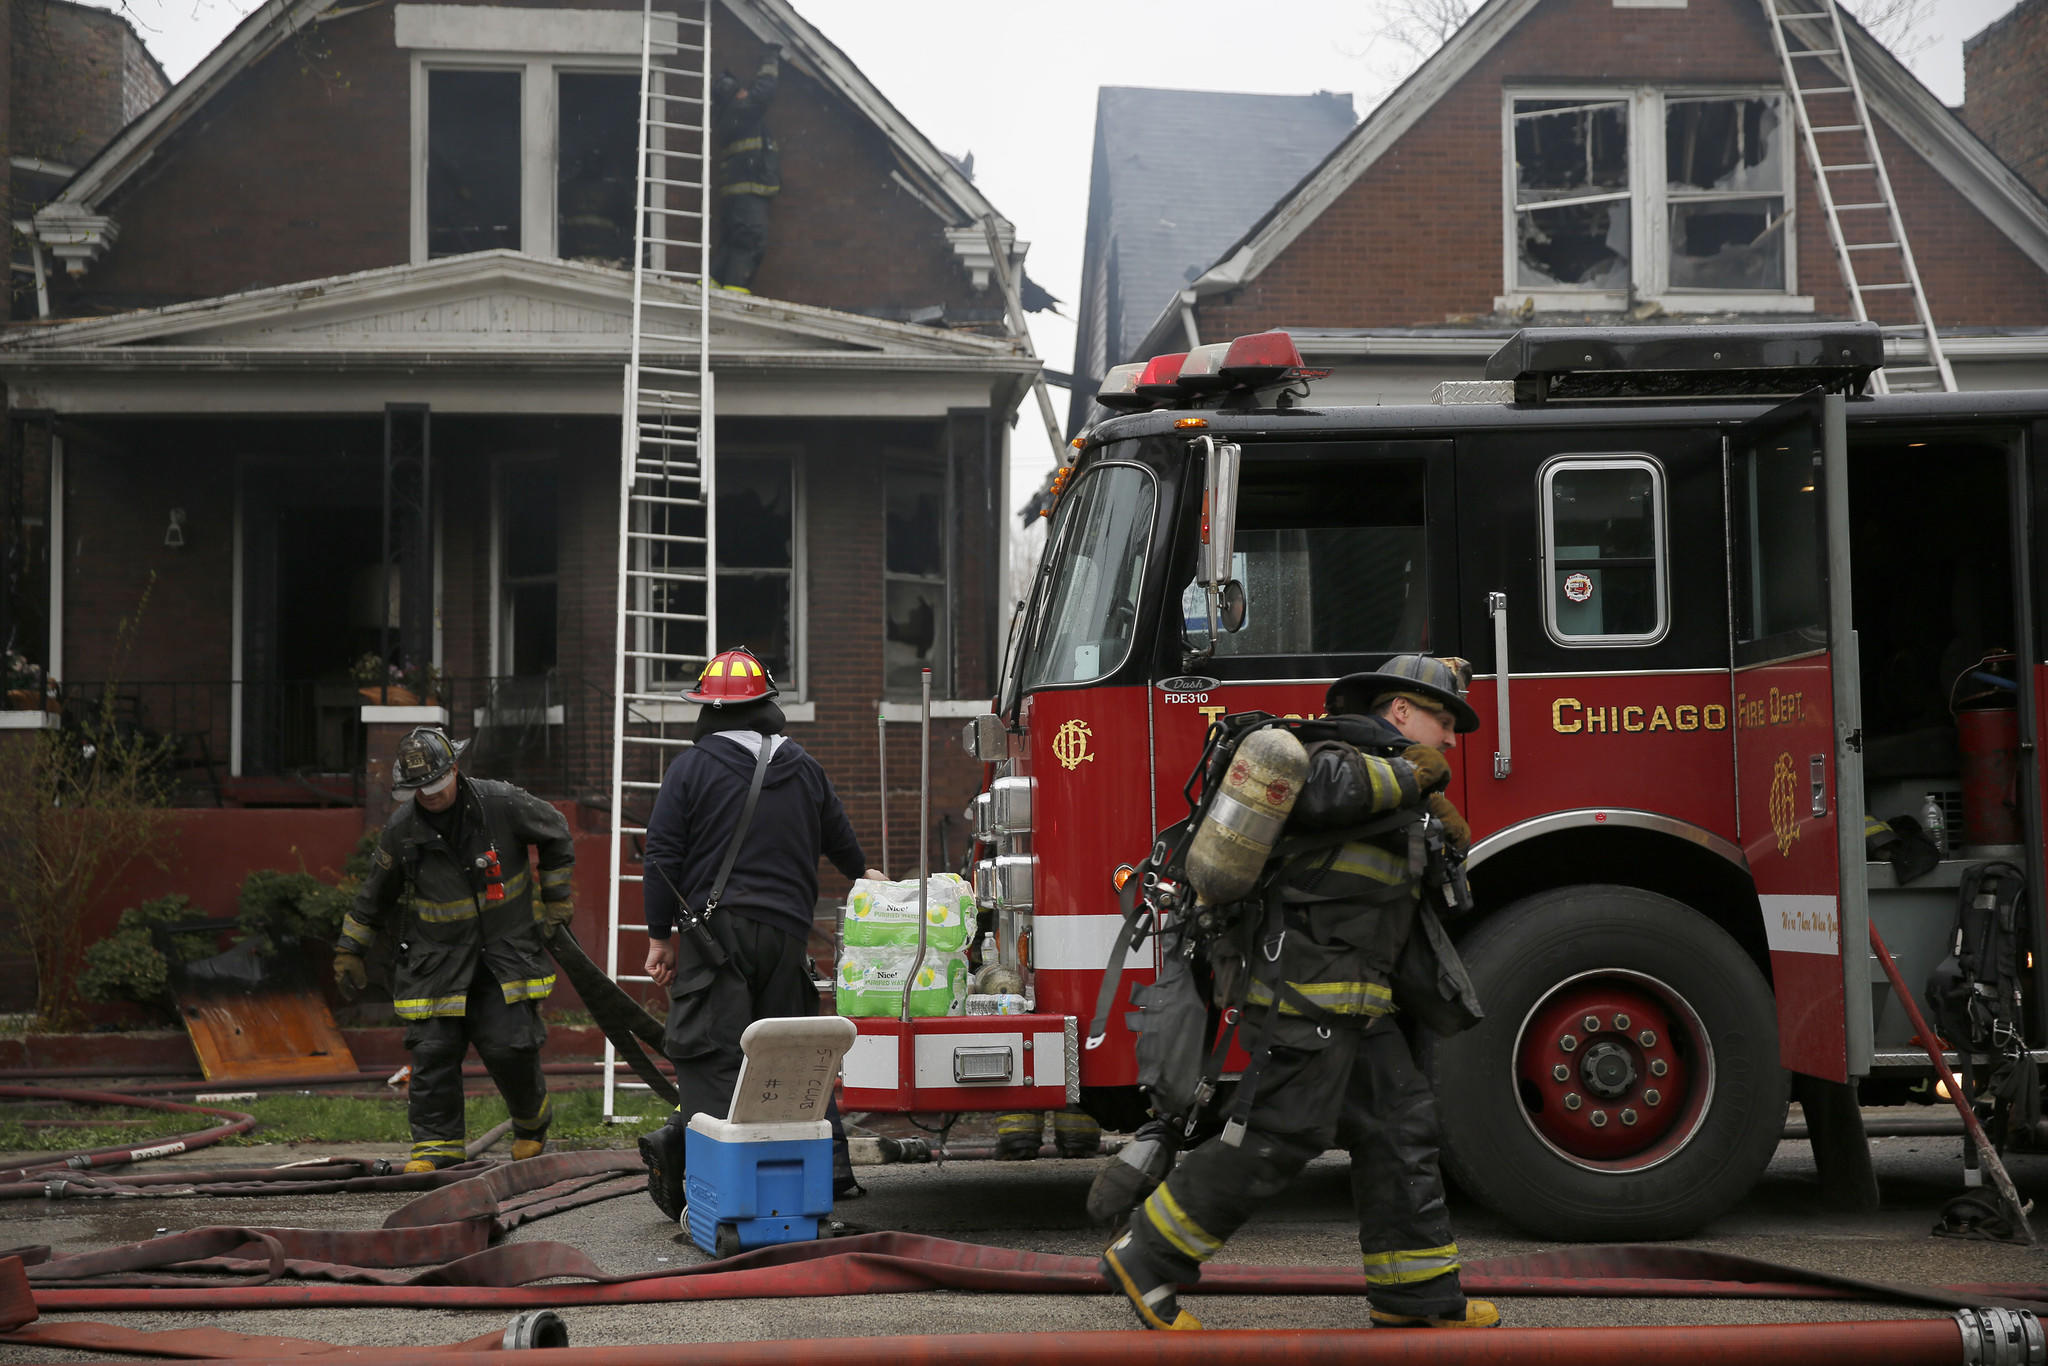 Chicago firefighters work at the scene of an extra-alarm fire in the 6600 block of S. Bishop St. in Chicago.